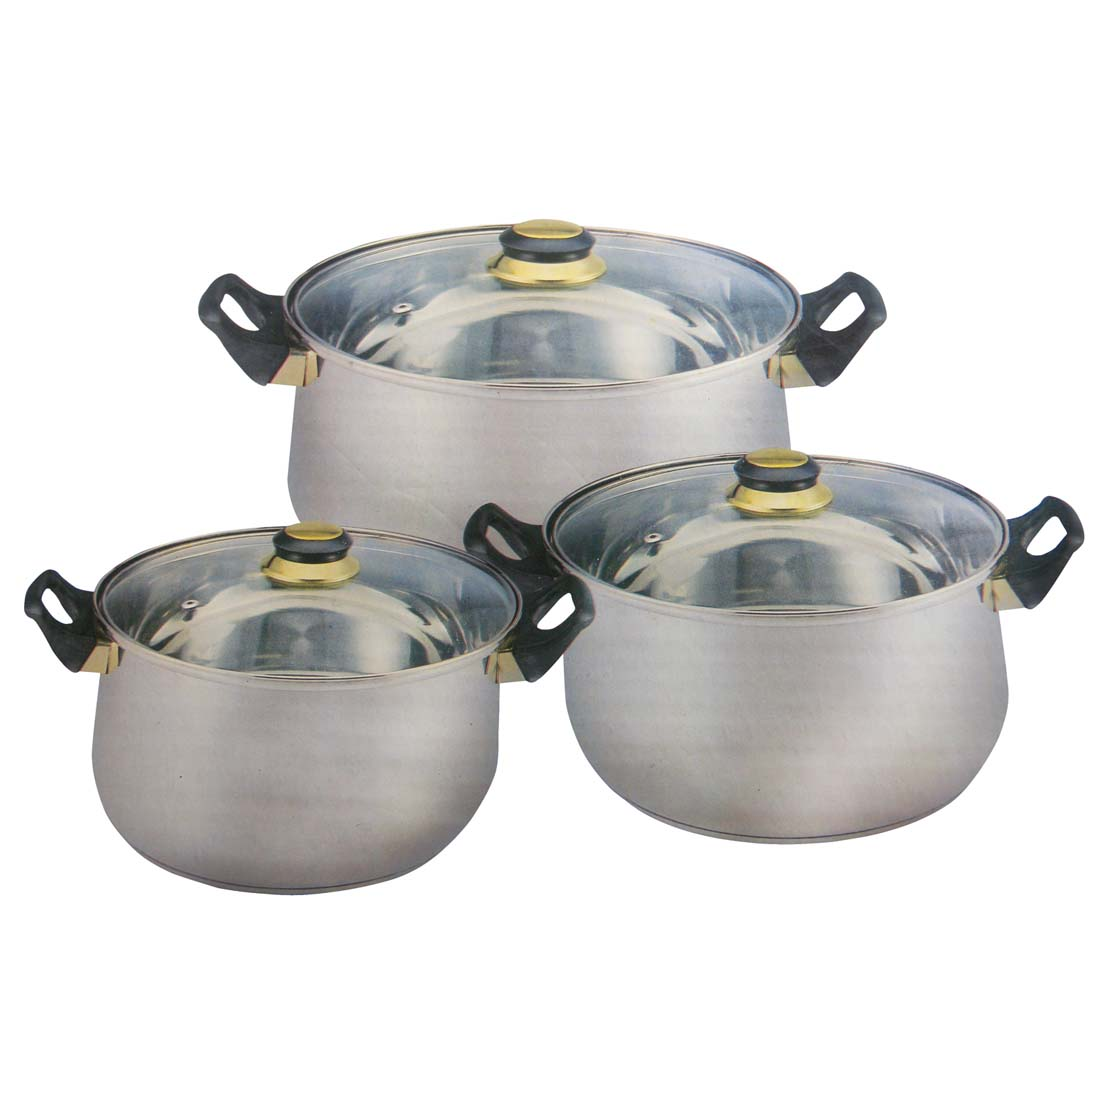 View COOKING SET 3 POTS WITH GLASS COVERS 69 AND 22 CUP